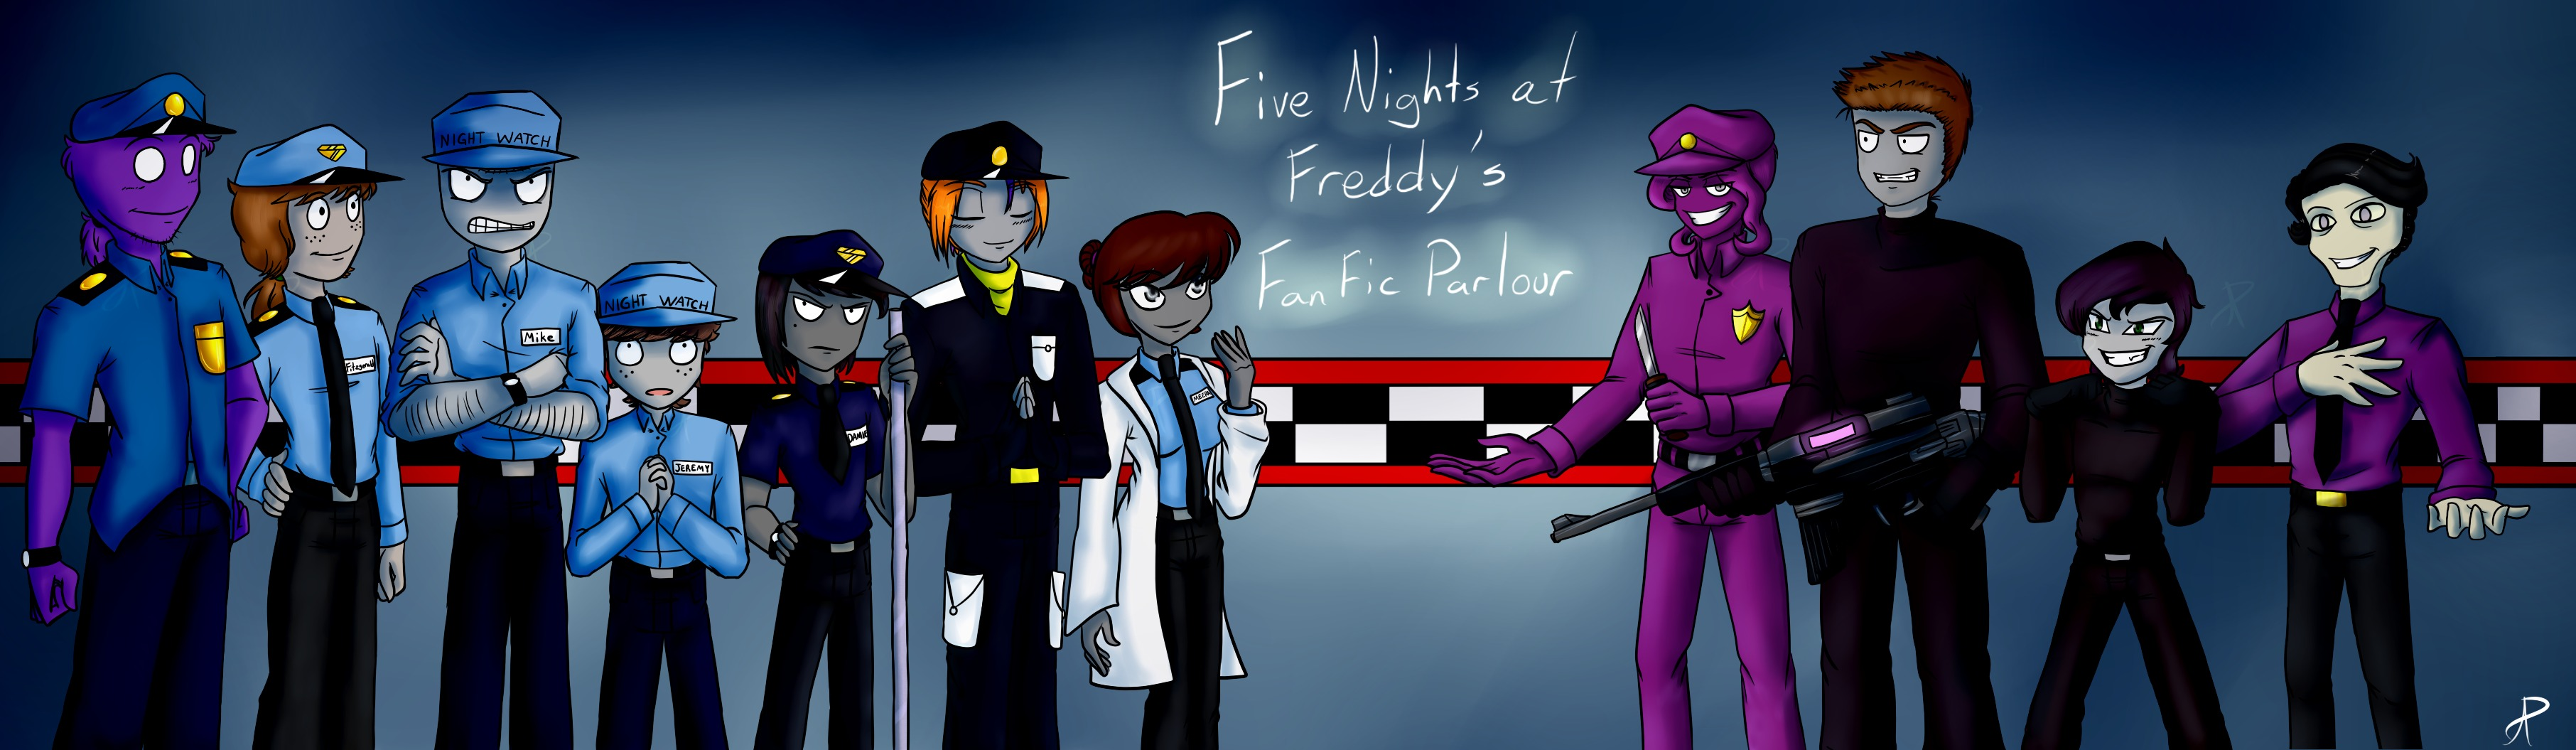 How Much Would The Friends Apartment Cost Five Nights At Freddy S Fanfic Parlour